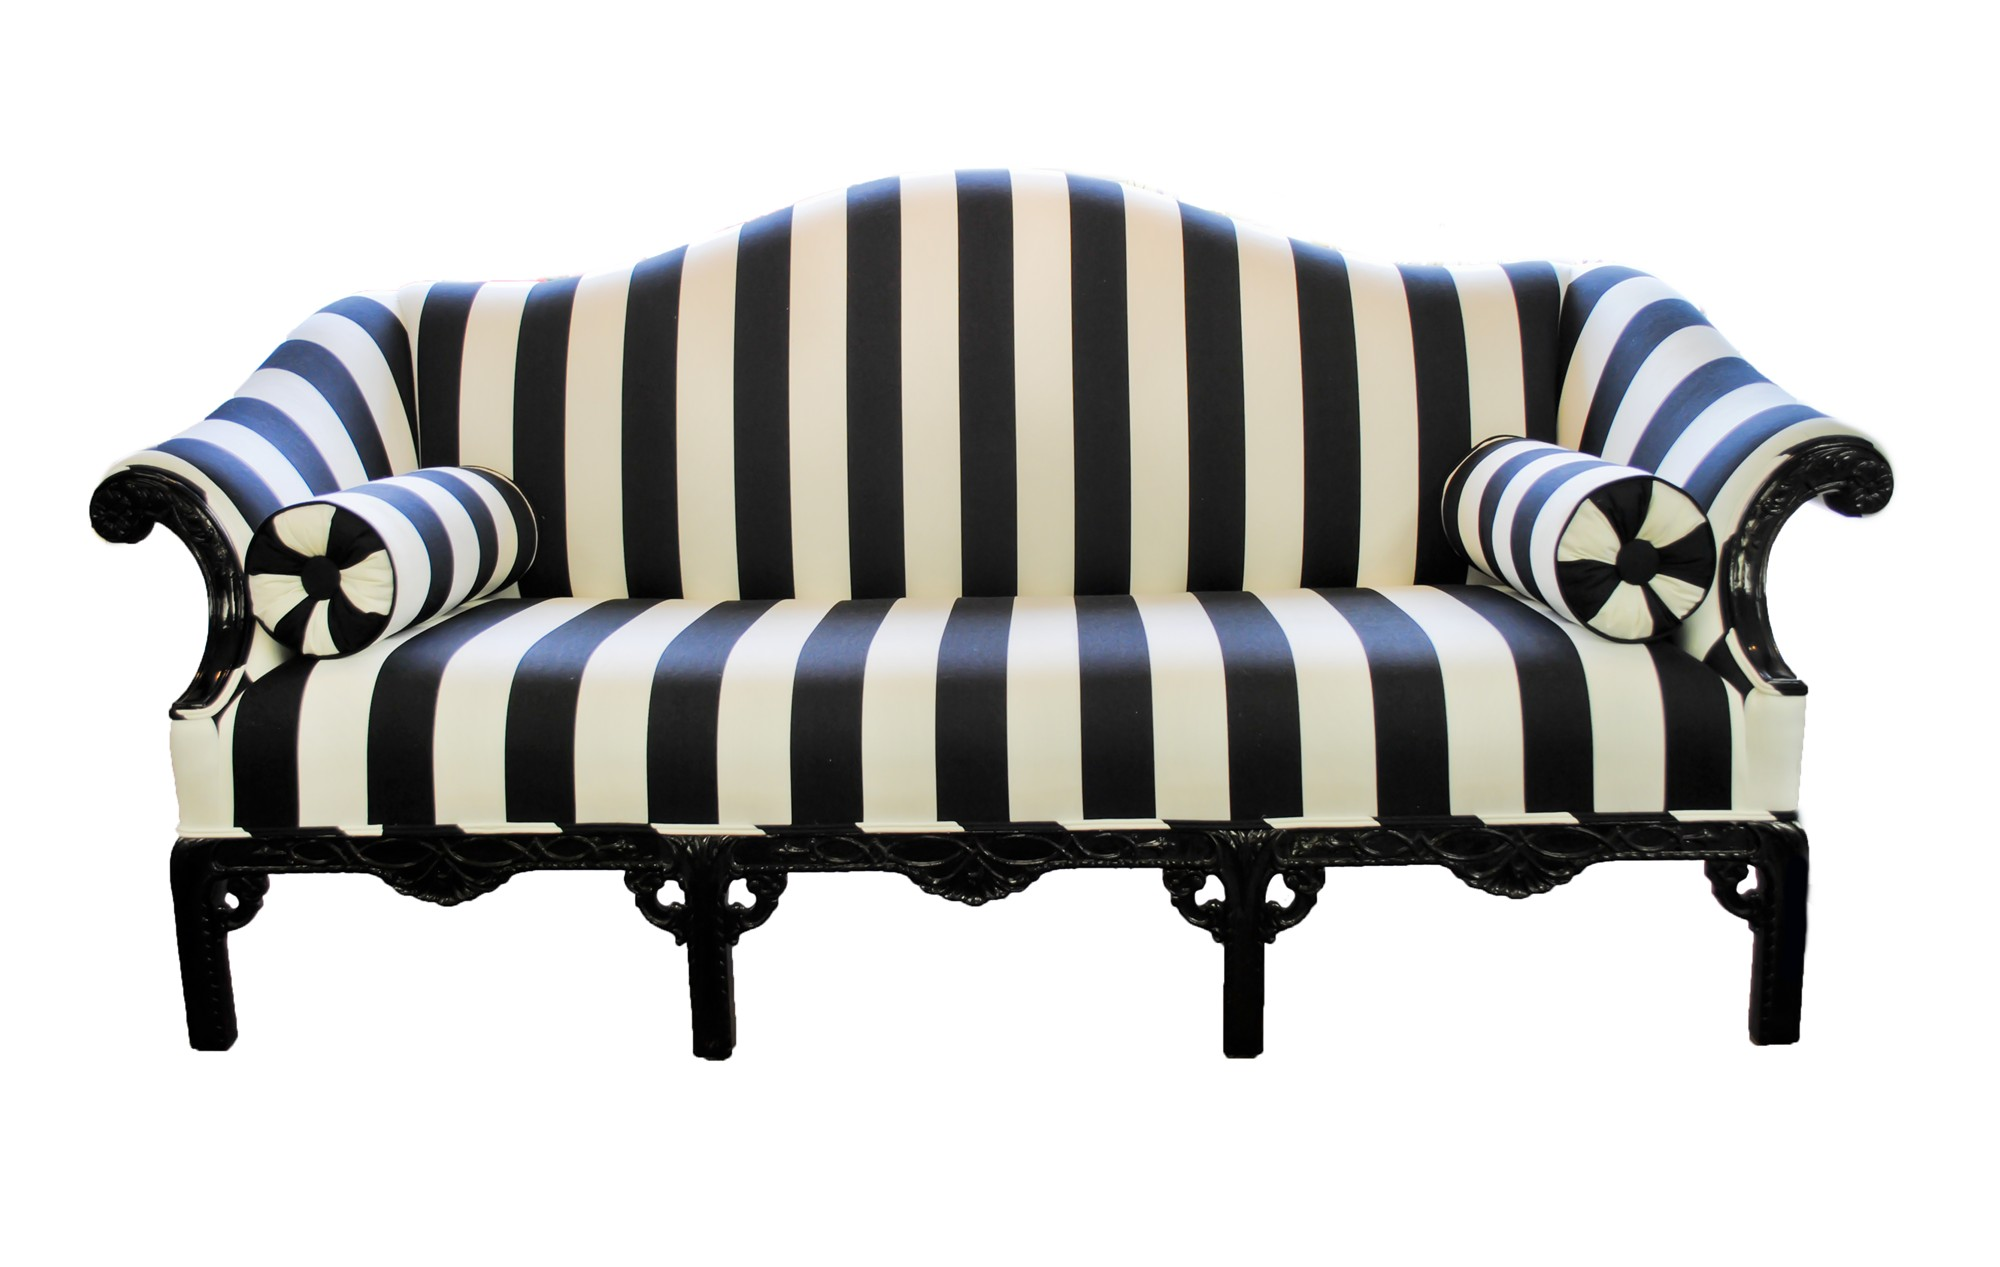 Black and White Striped Couch